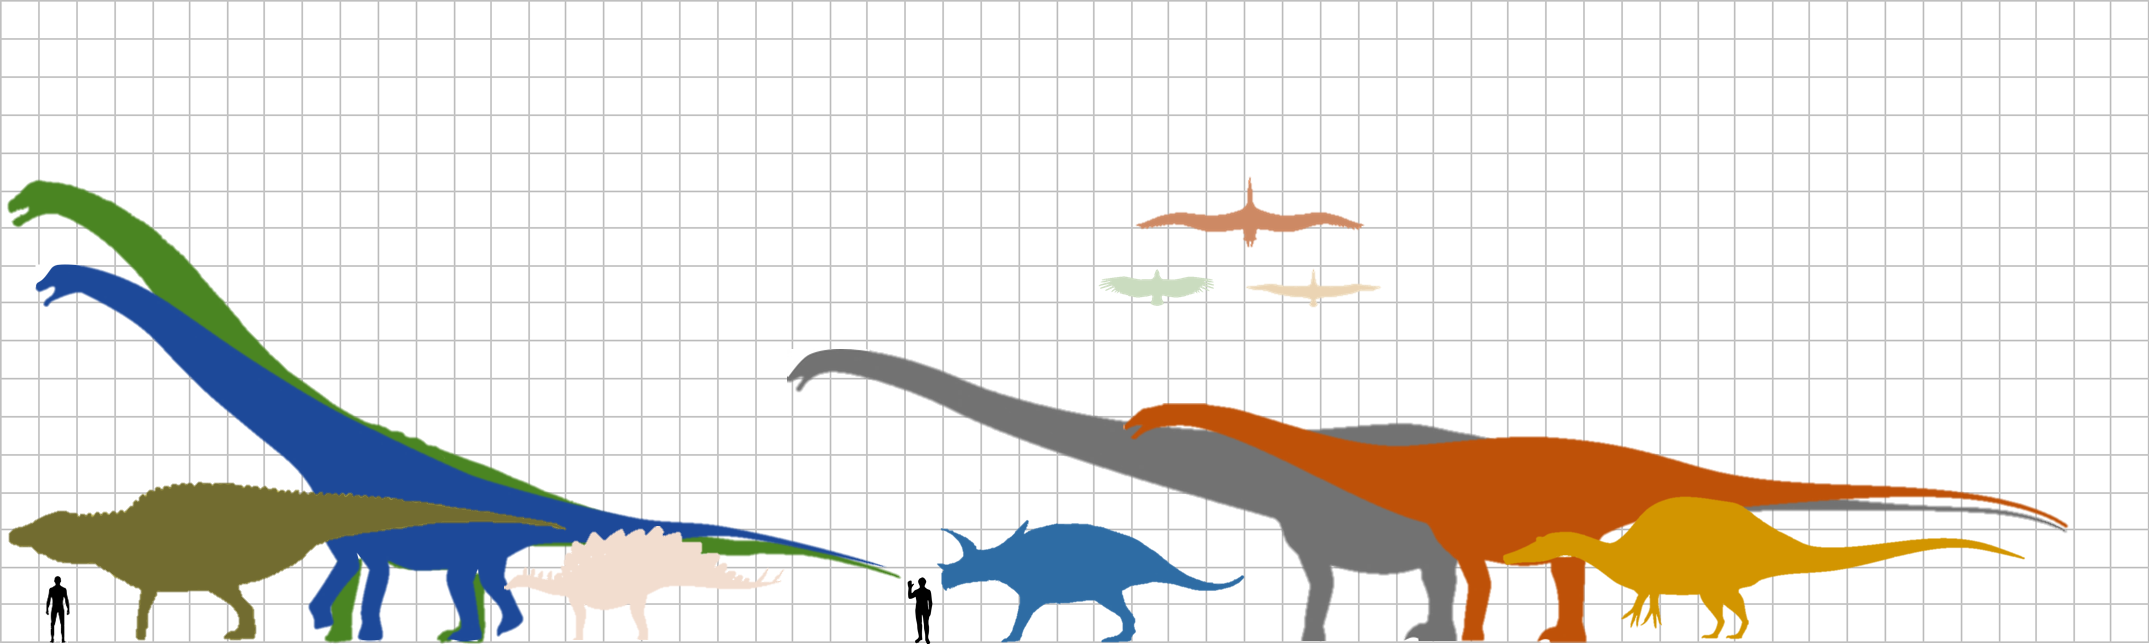 scale of the size of dinosaurs compared to an average human